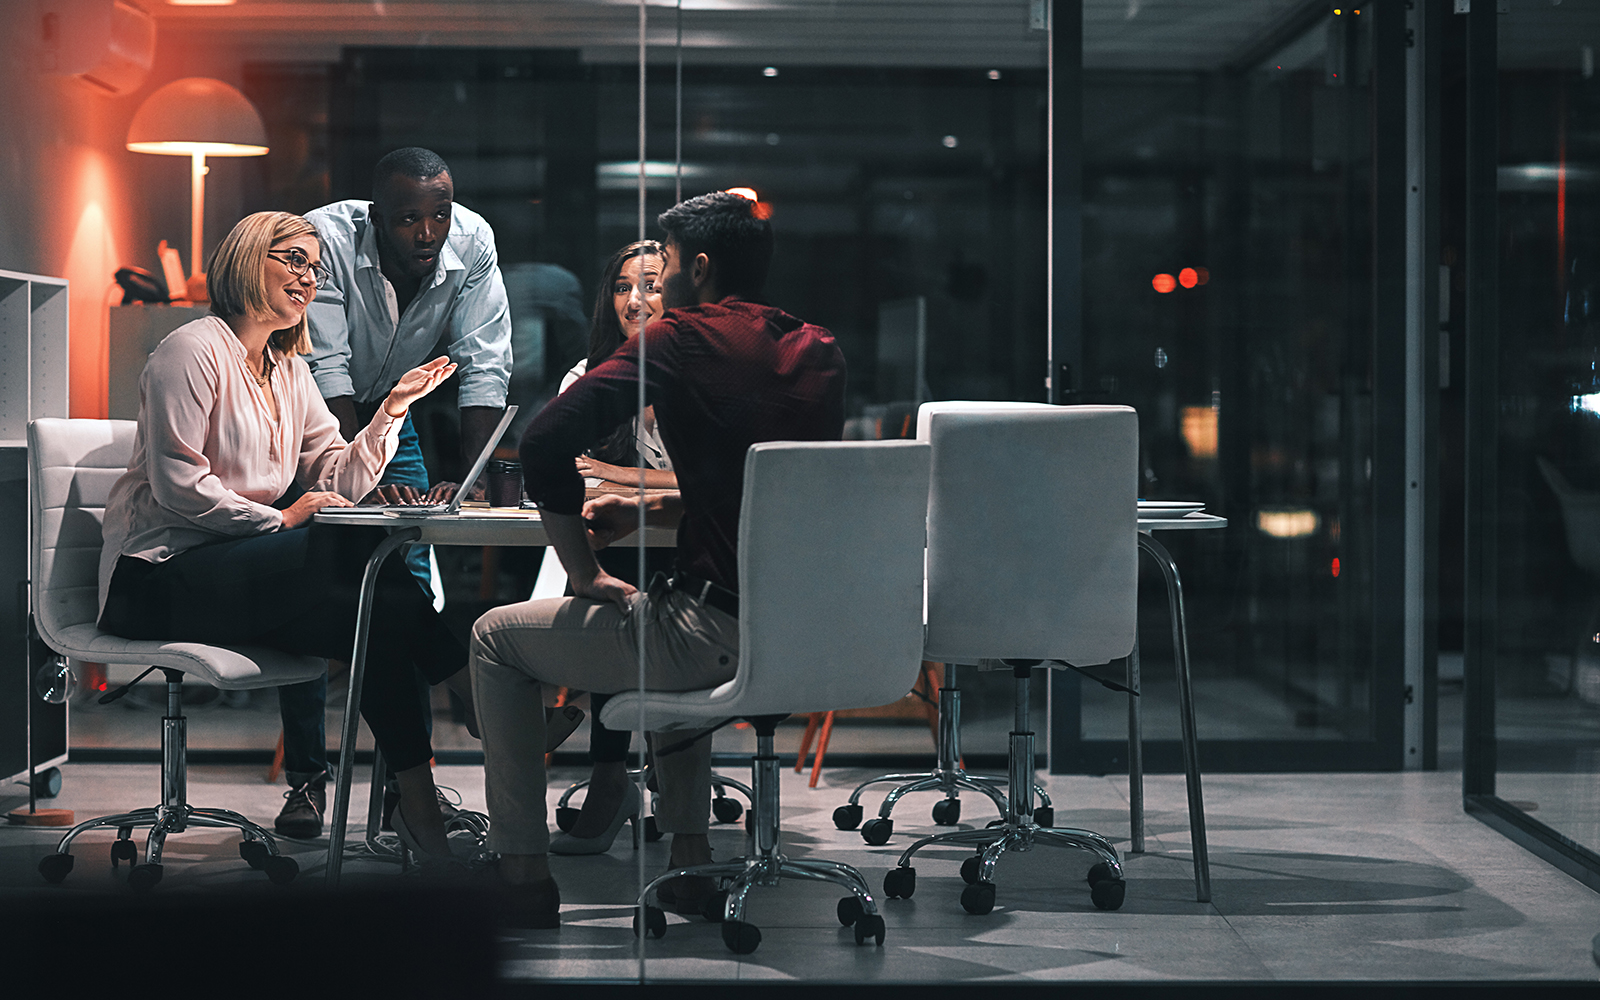 Shot of colleagues having a meeting during a late night in a modern office